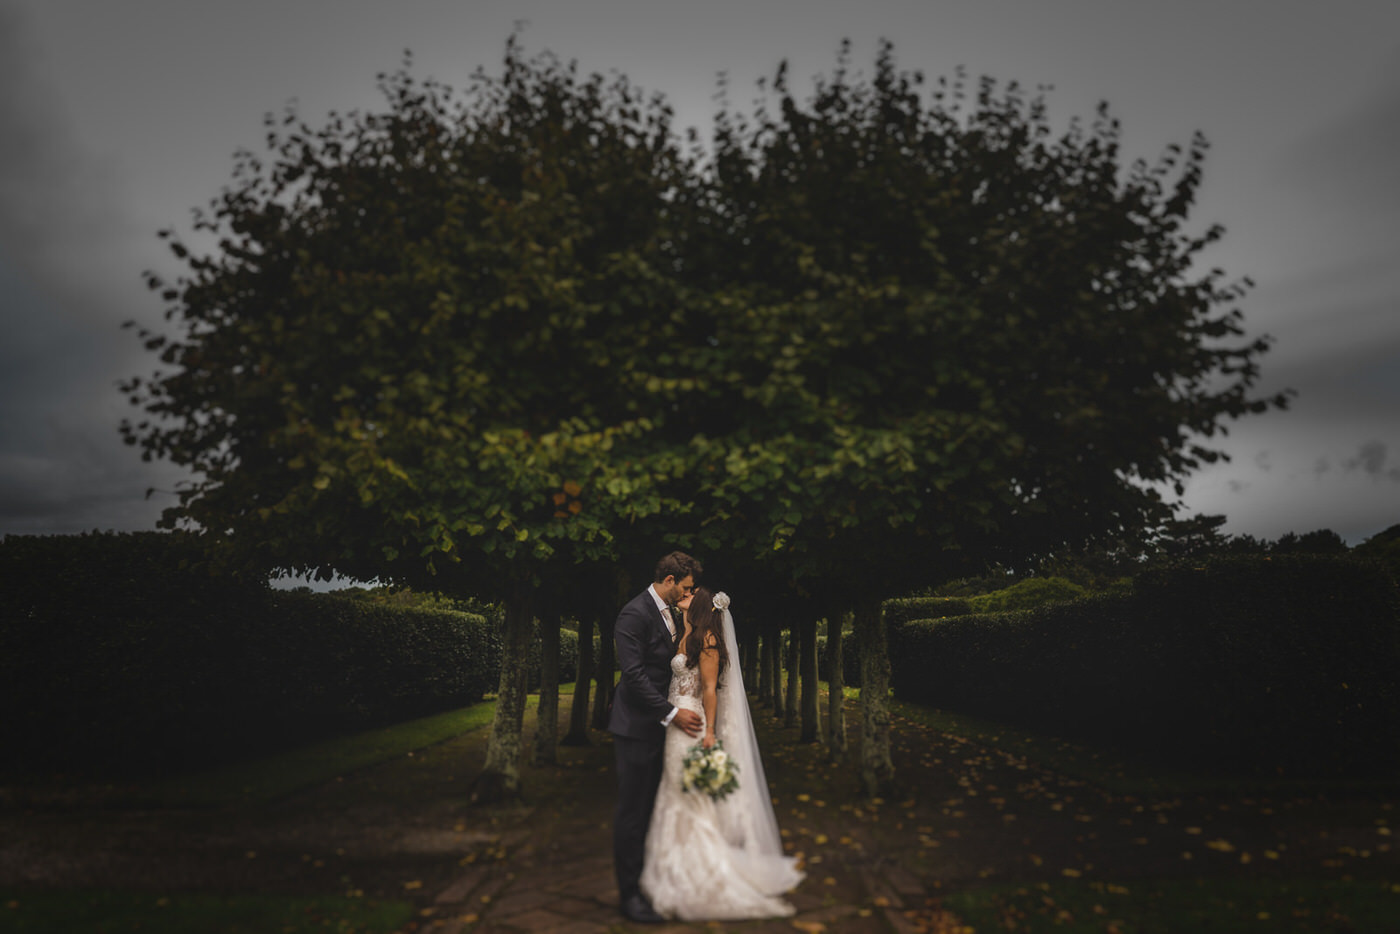 a gentle kiss is shared as the bride and groom stand in front of a heart shaped tree at Thornton Manor